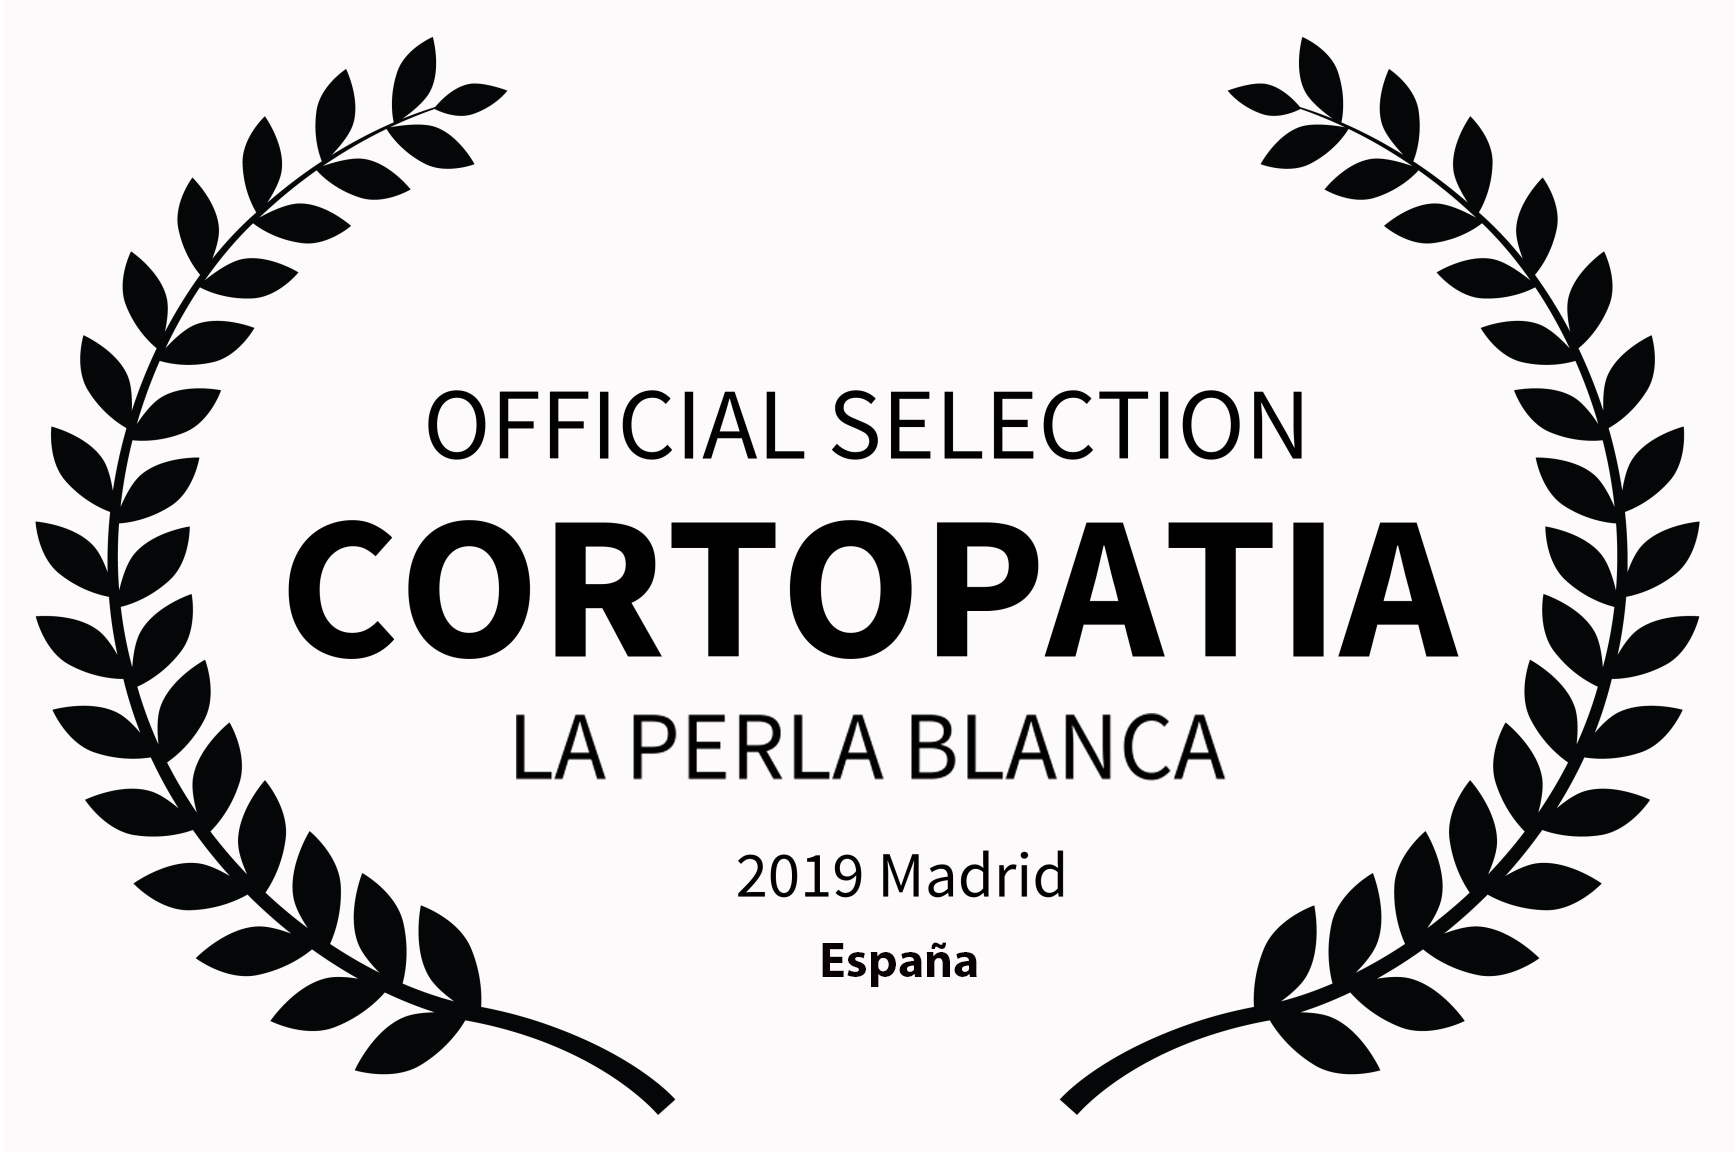 OFFICIAL SELECTION - CORTOPATIA - LA PER